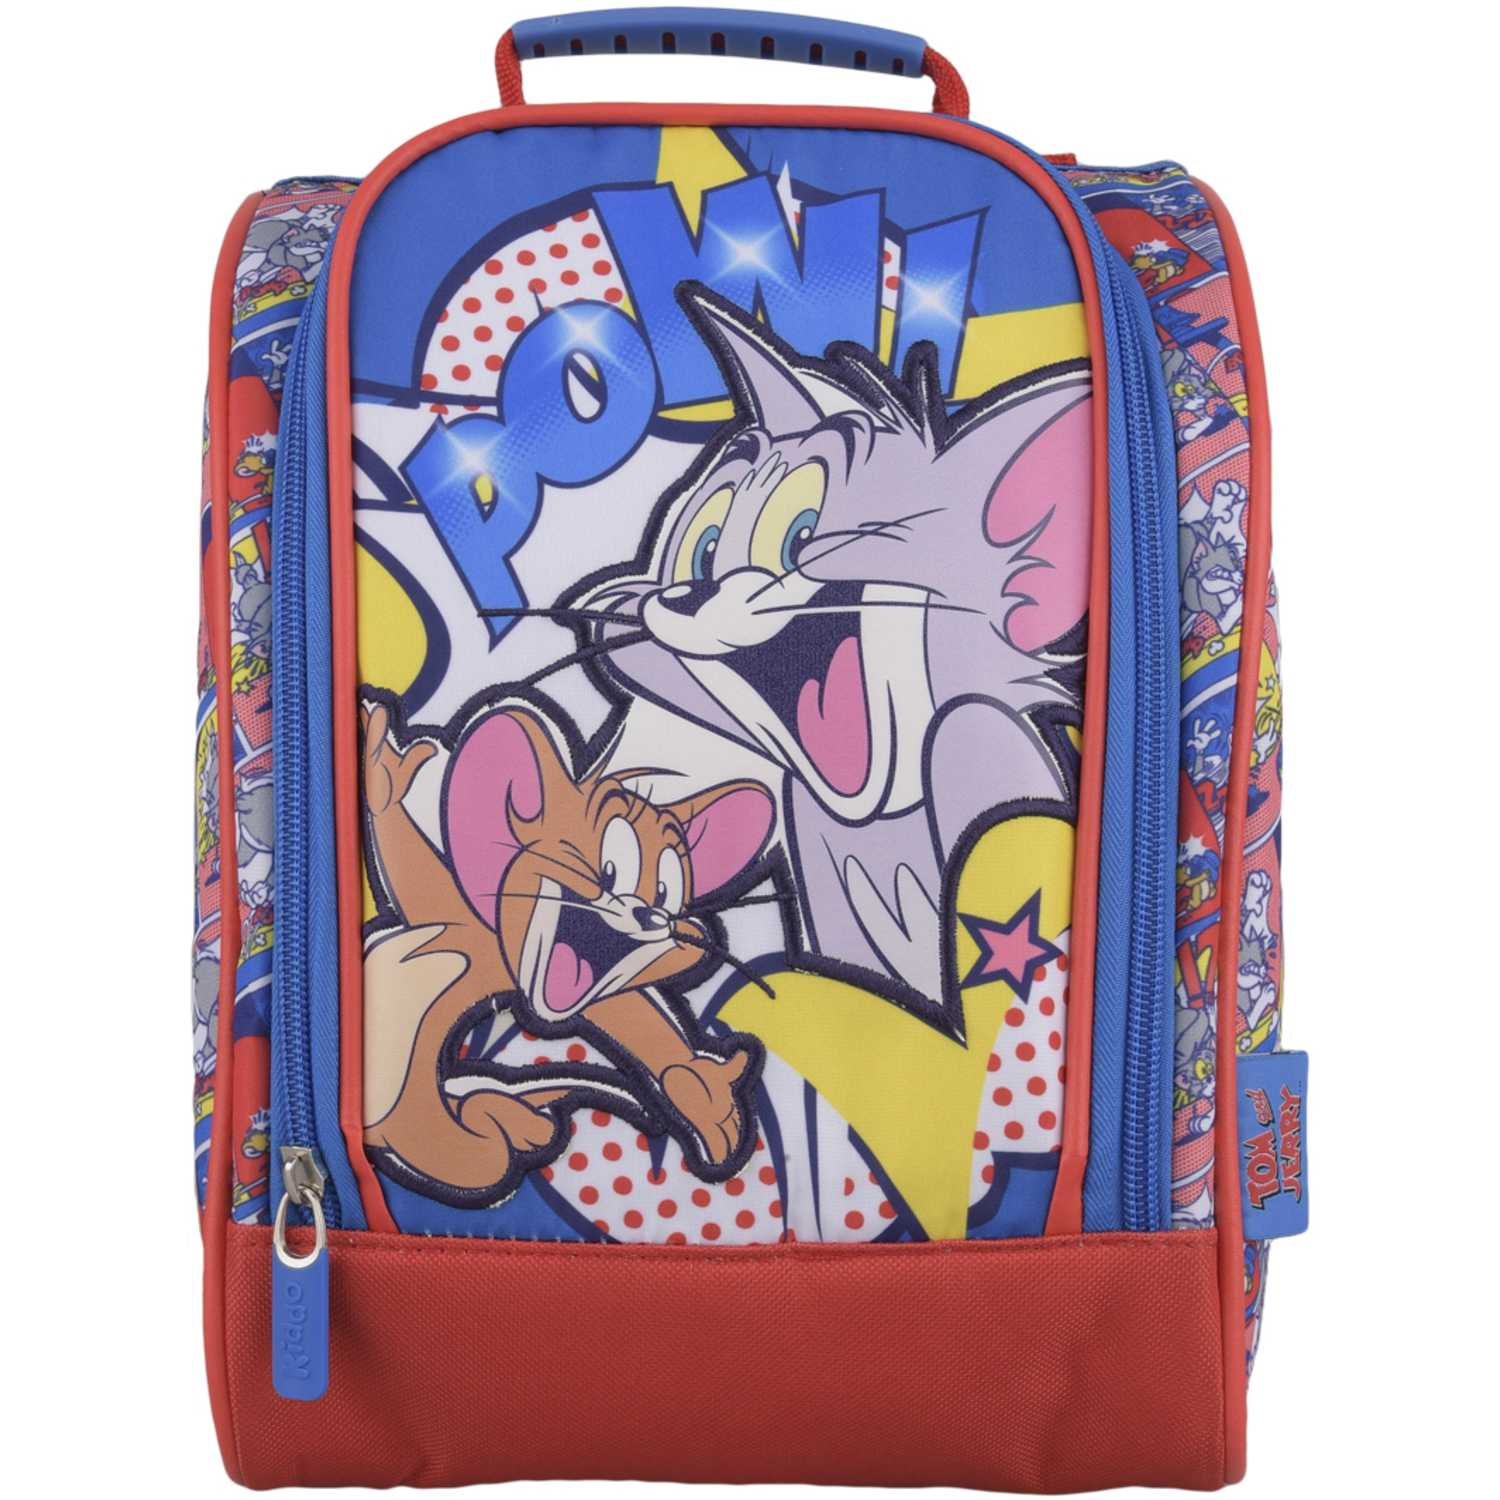 TOM & JERRY Lonchera Hk Tom & Jerry Pow Azul / rojo Loncheras